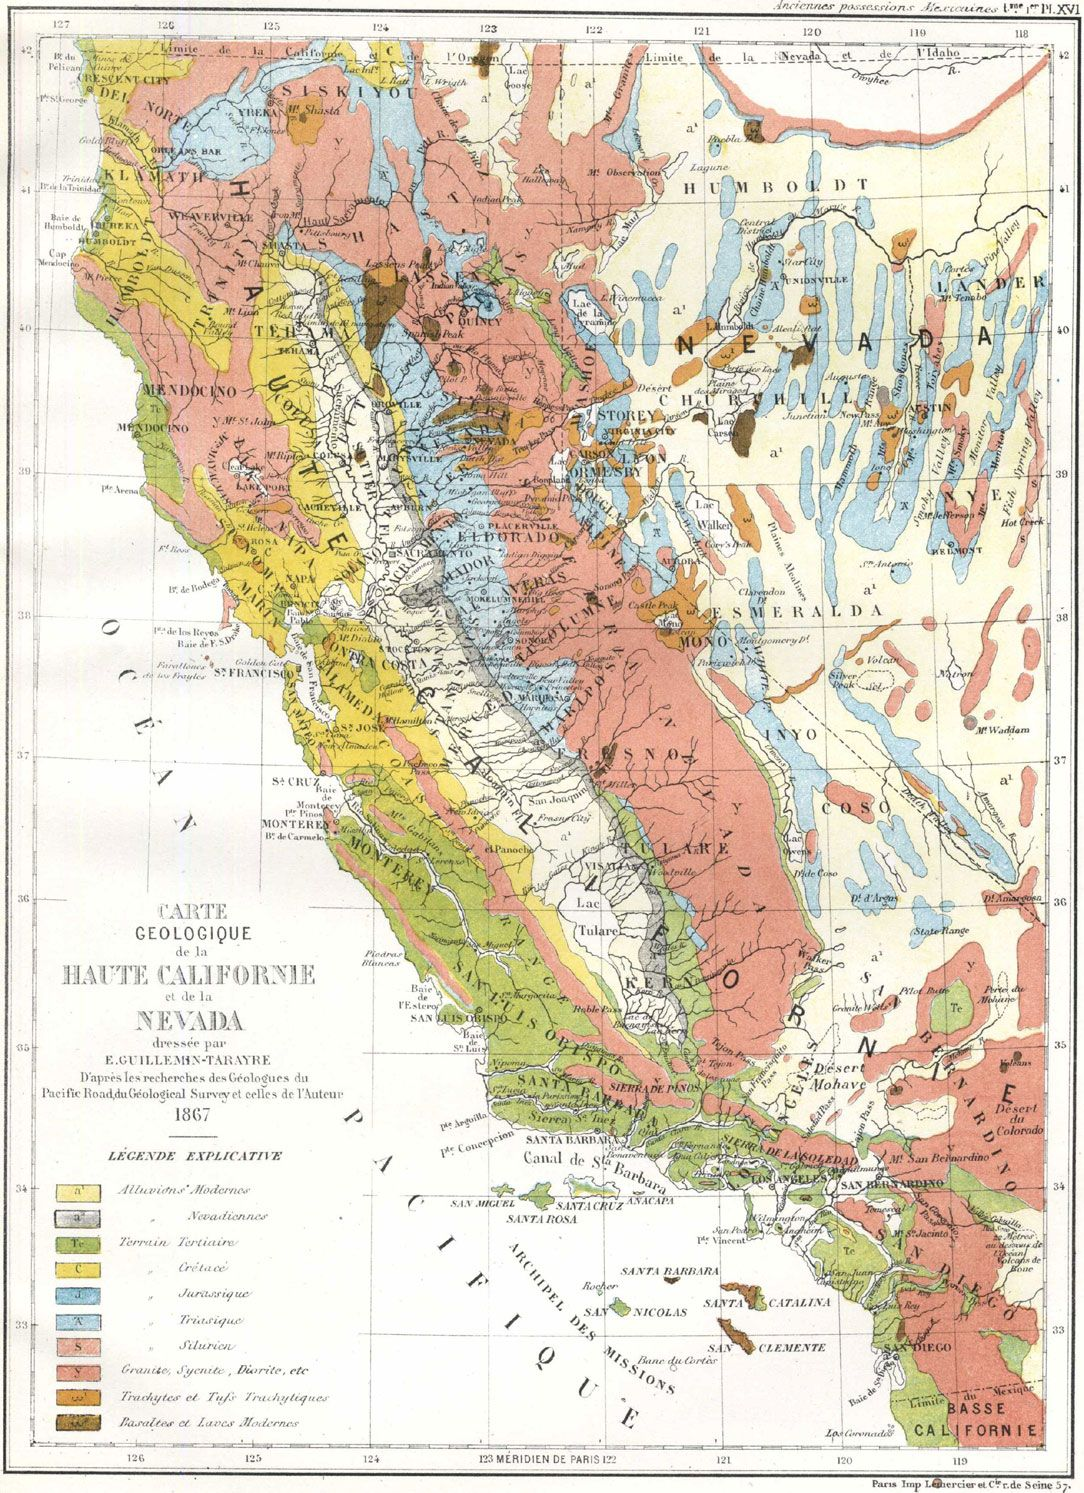 Landmarks In The Publication Of Early Geologic Maps Of The